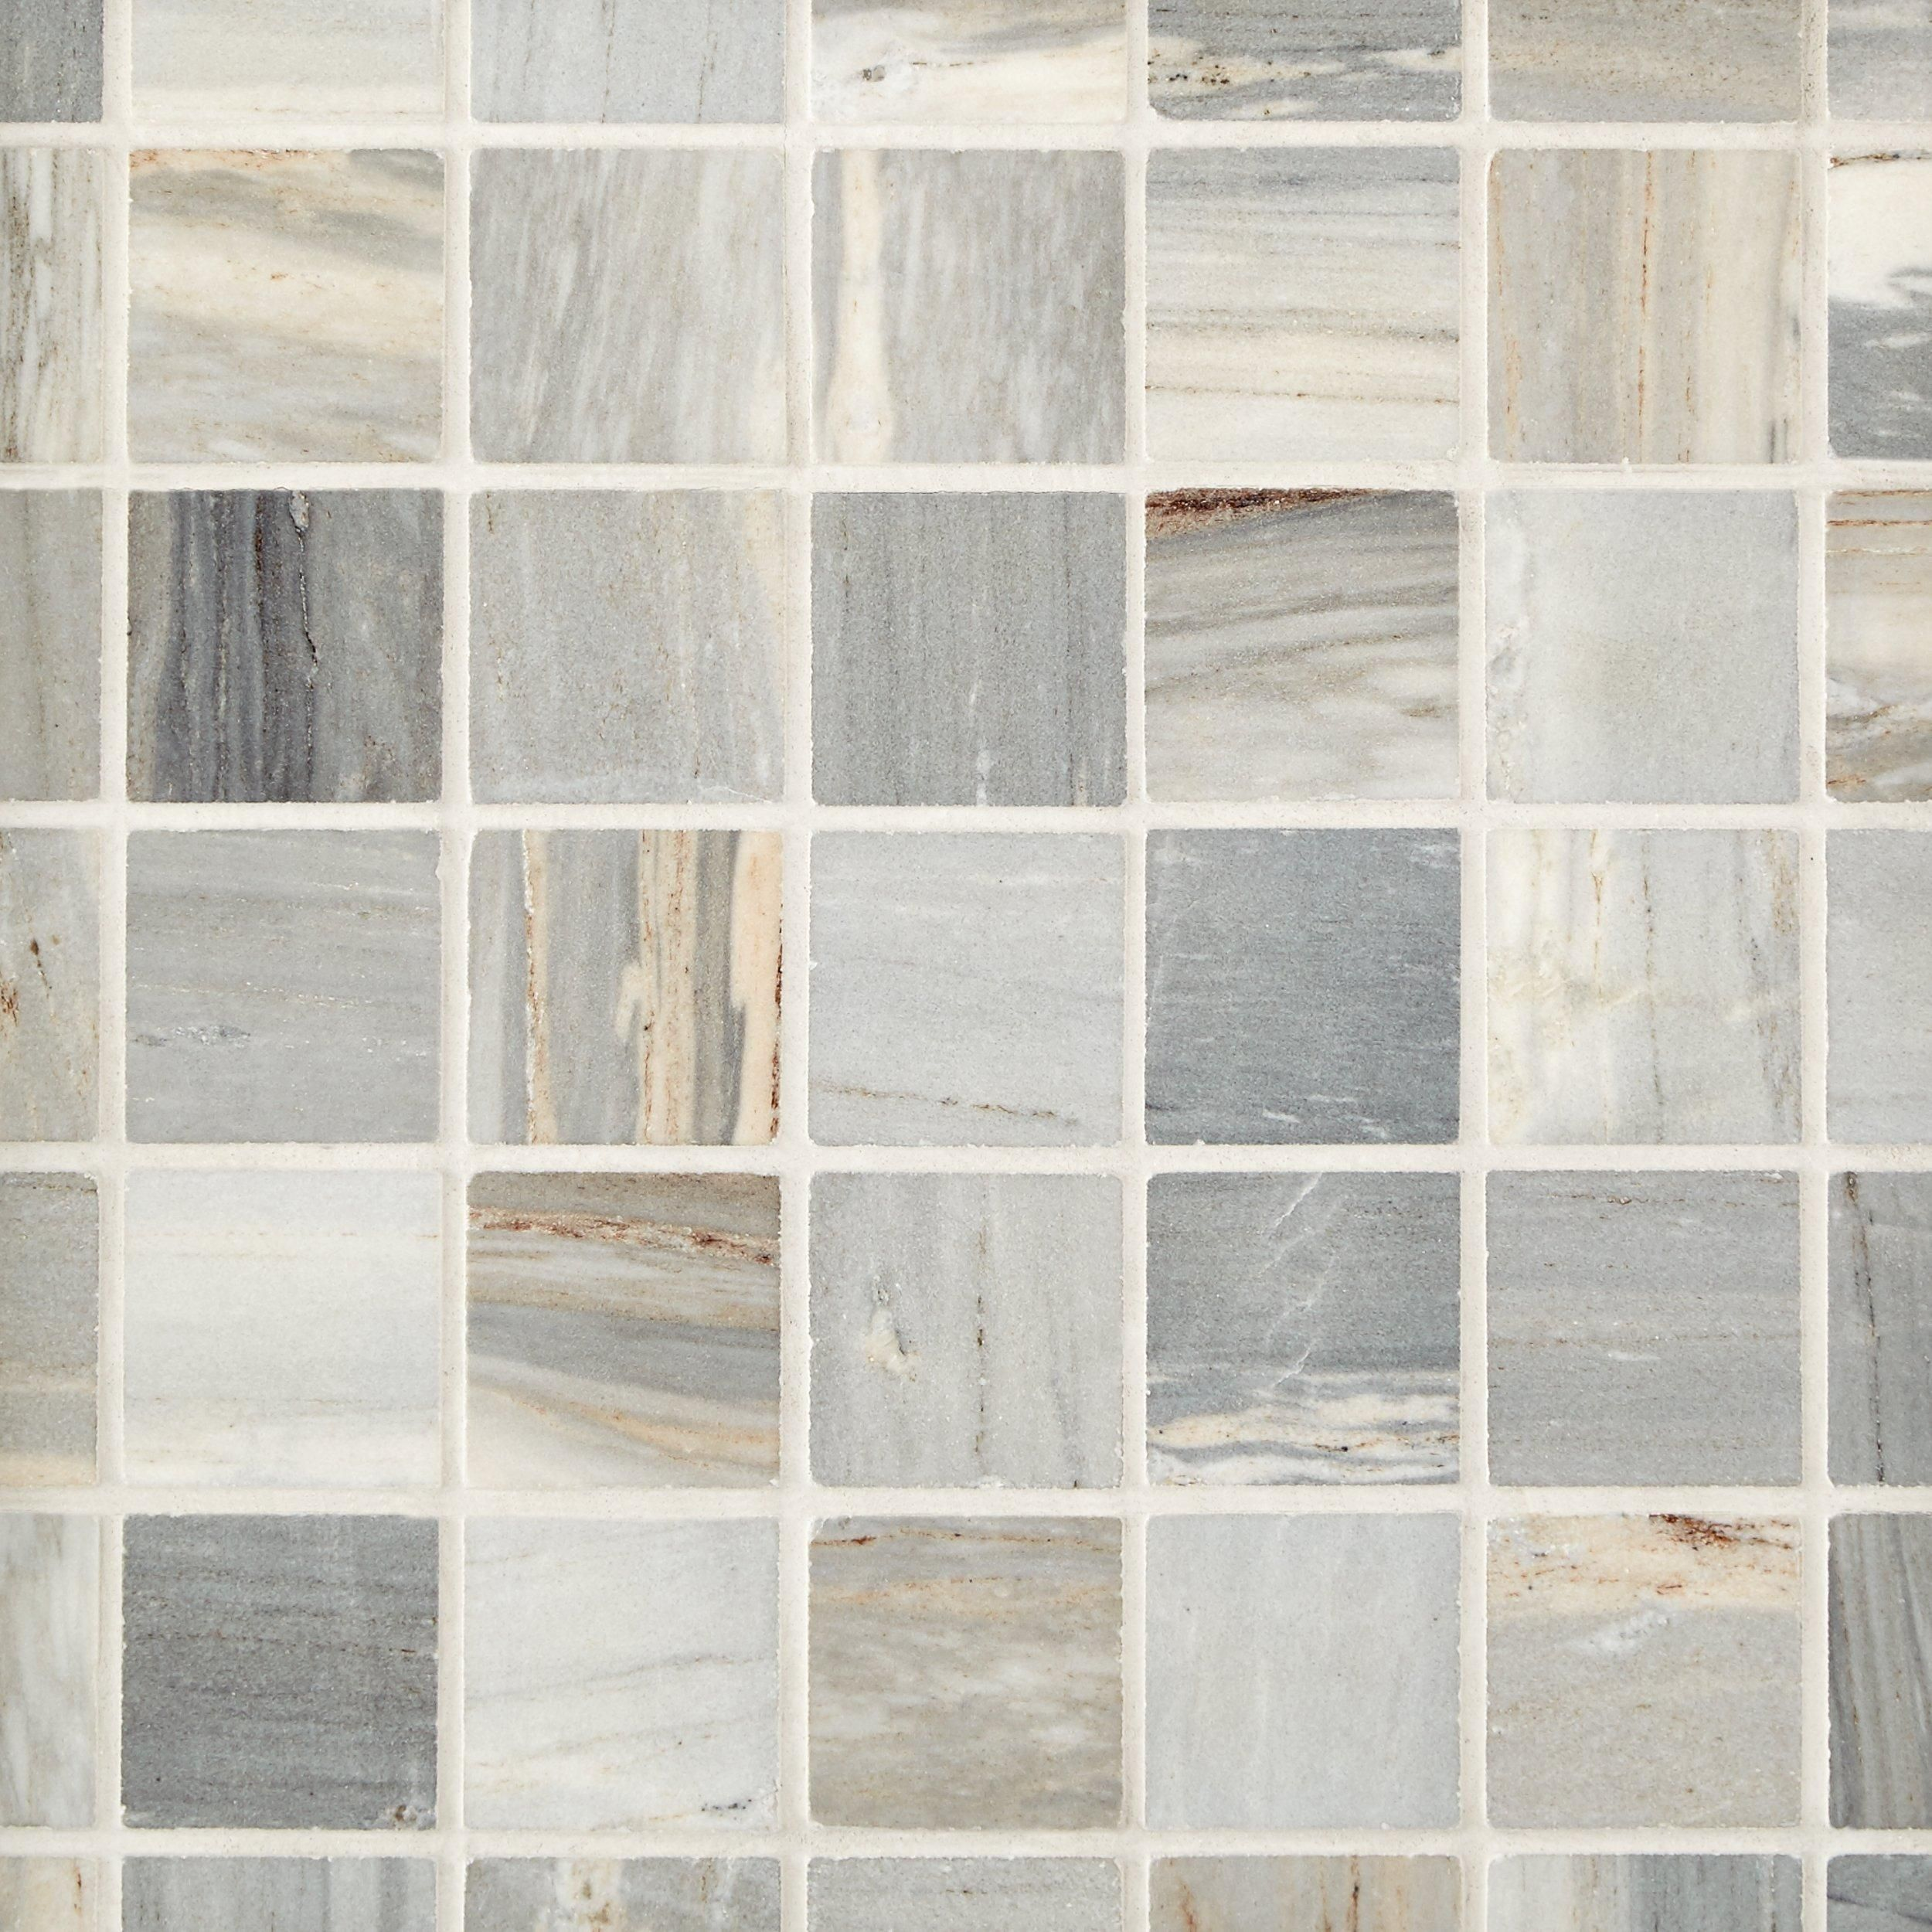 Blue Caress Light Marble Clean And Fresh This Latest Natural Marble Is A Wonderfully Delicate Light Blue Gray T Blue Marble Tile Blue Tile Backsplash Mosaic